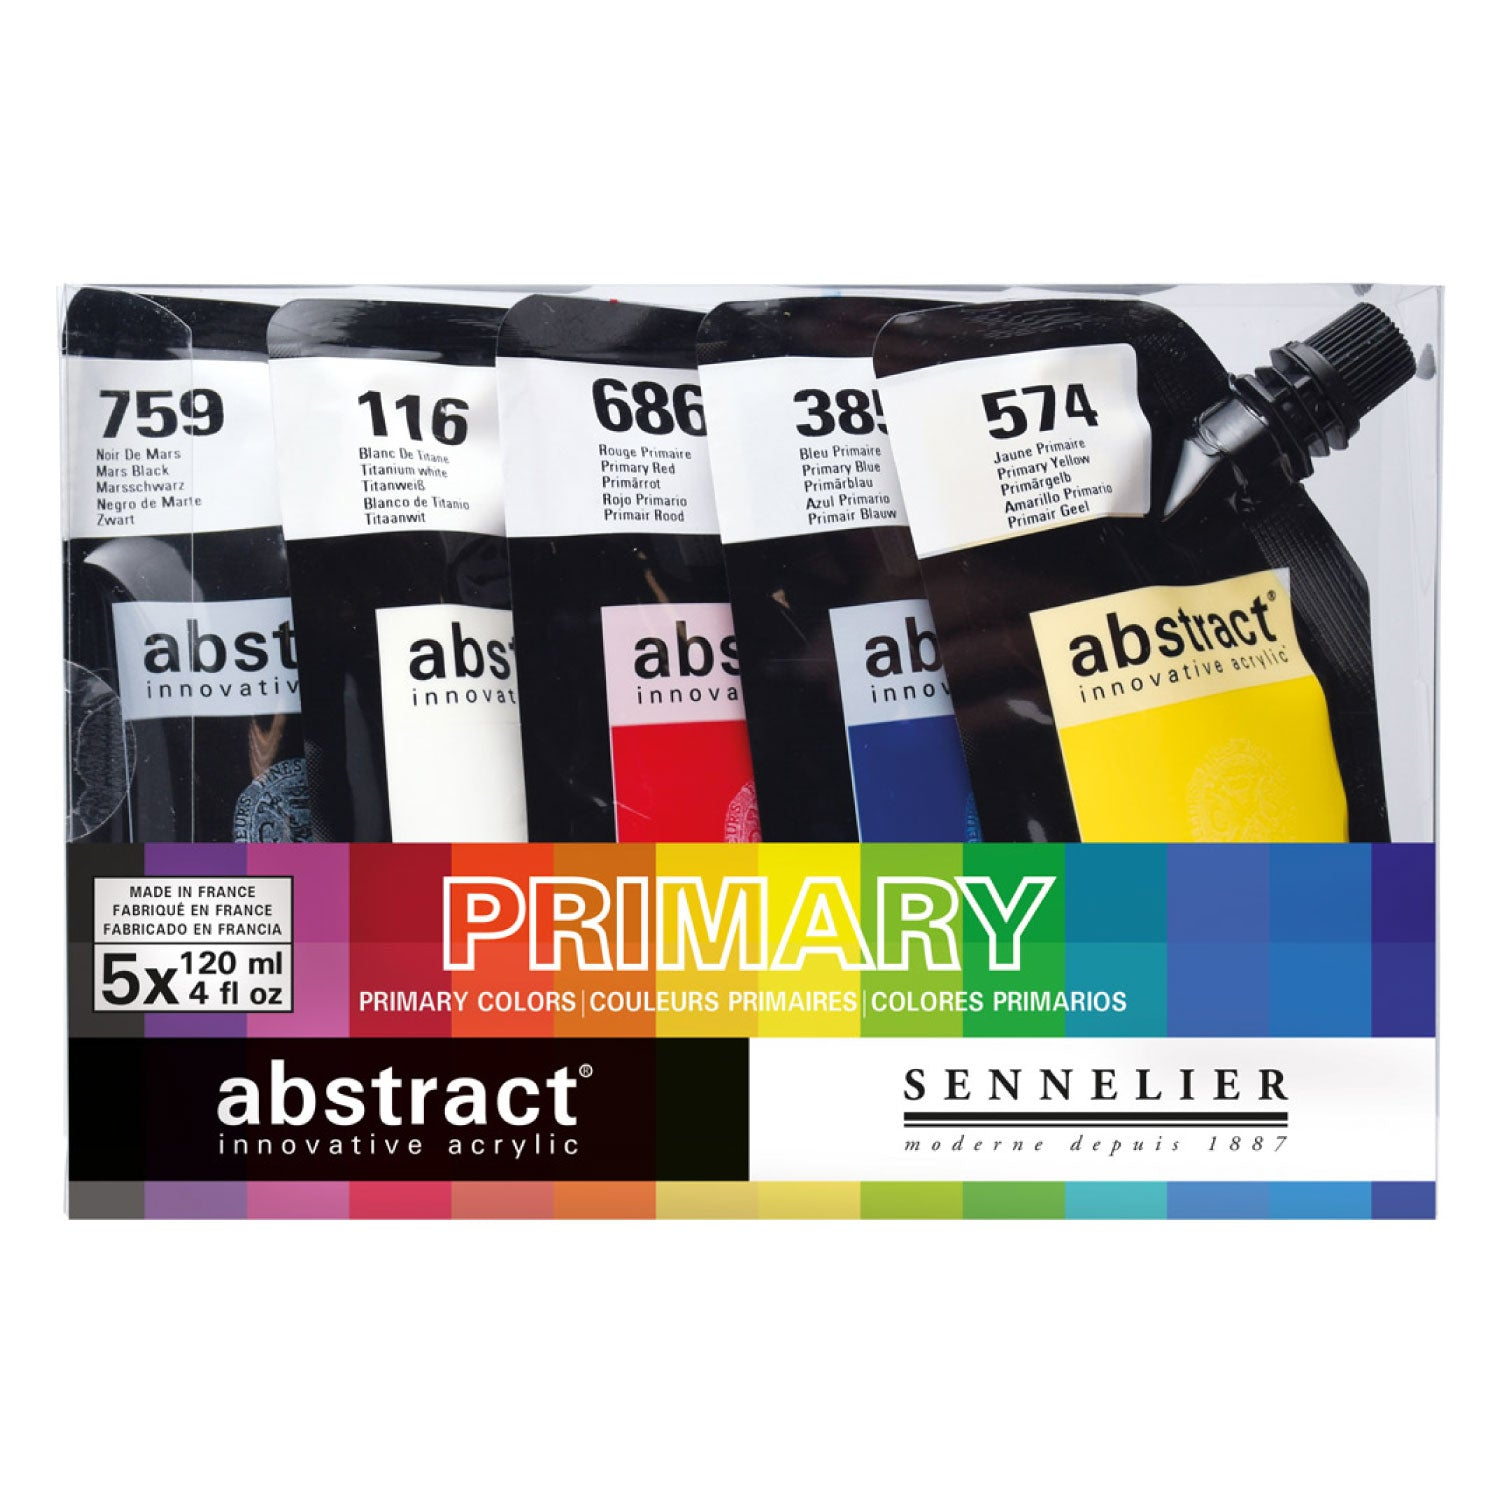 Sennelier Abstract Acrylic Paint Pouches - 5 x 120ml - Primary/Introductory